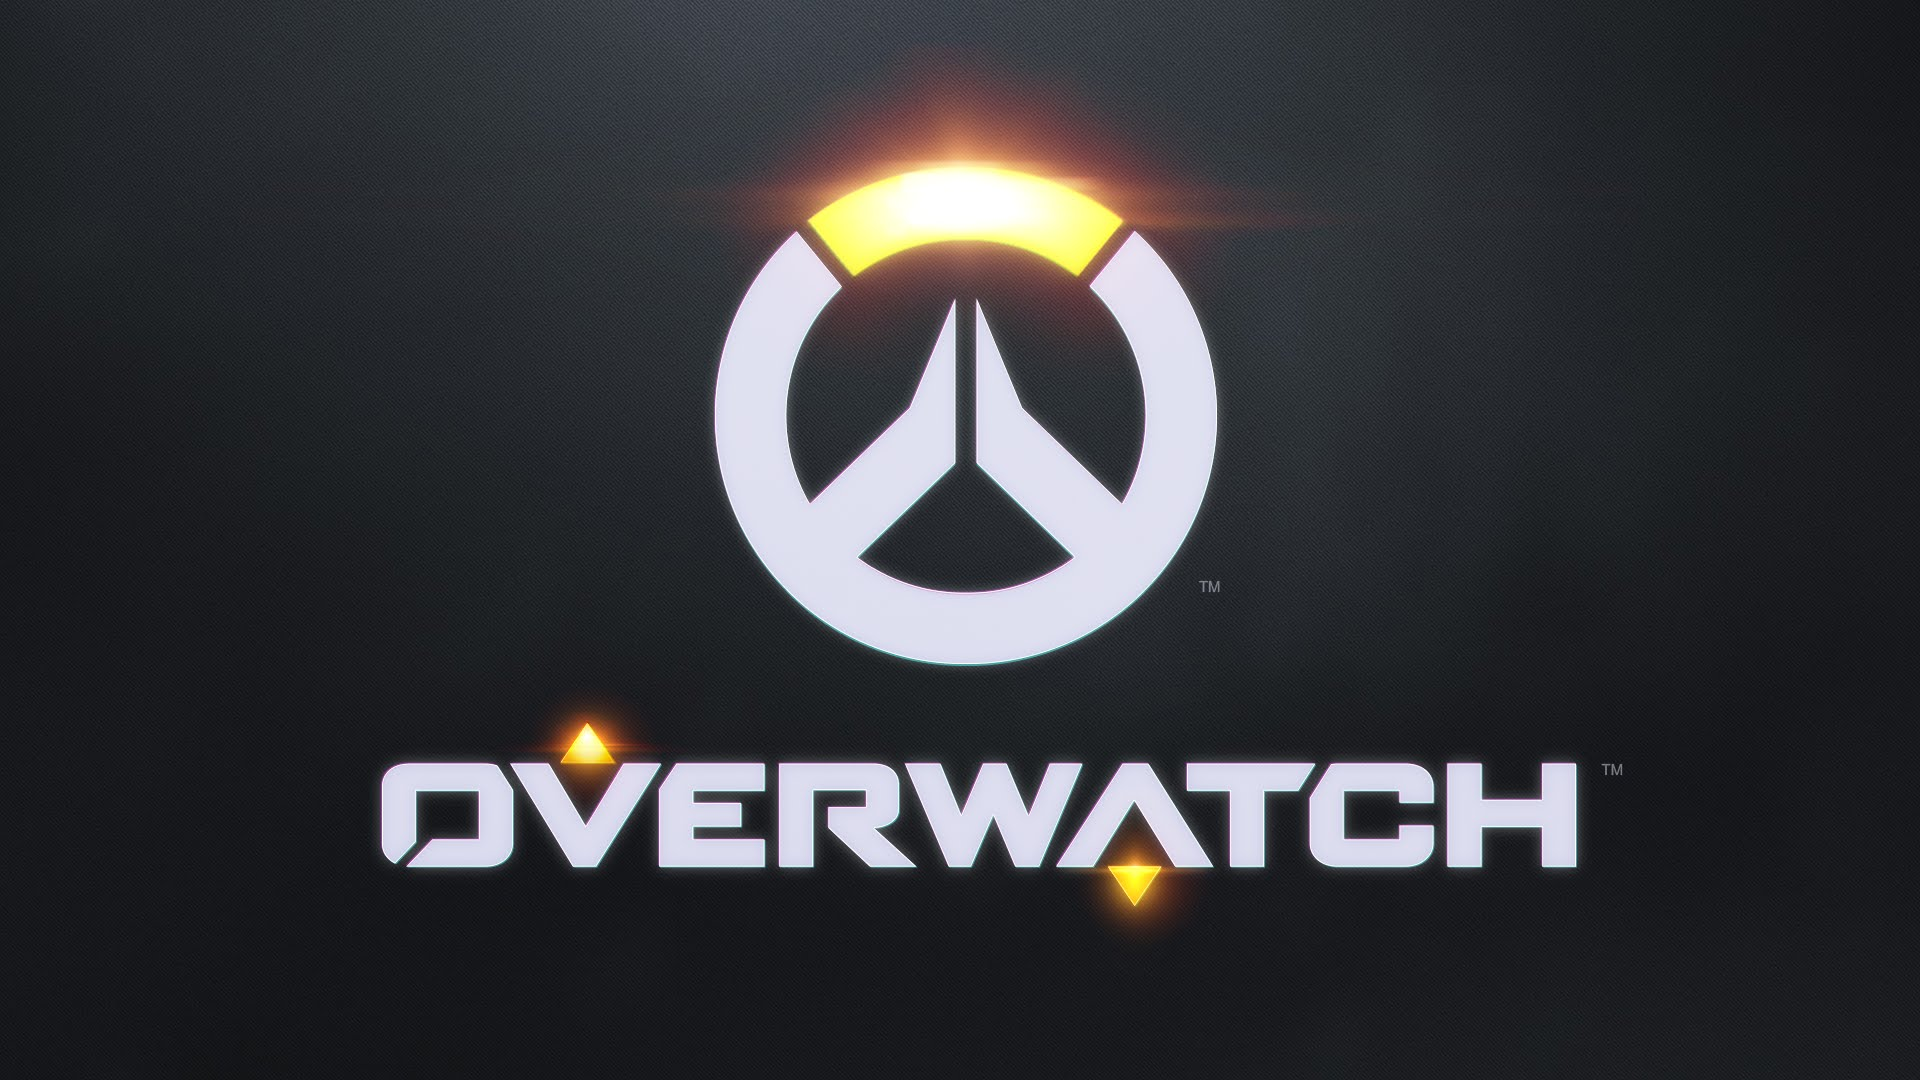 Everything You Need To Know About Overwatchs Story maxresdefault 1 8